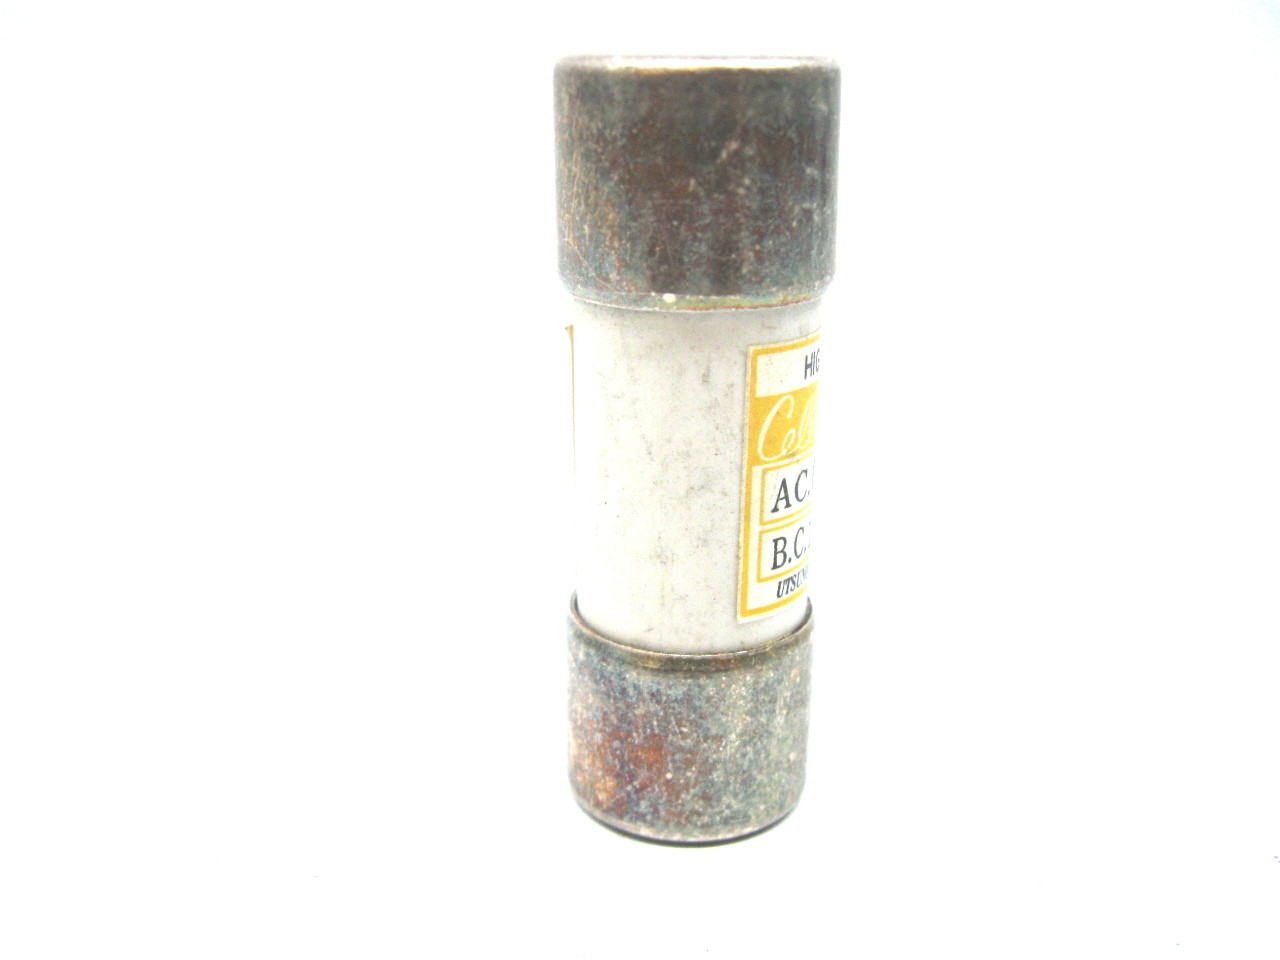 Cello Lite JG1F 15 High Breaking Capacity Fuse 15 Amp, 600 Vac Lot of 6 New